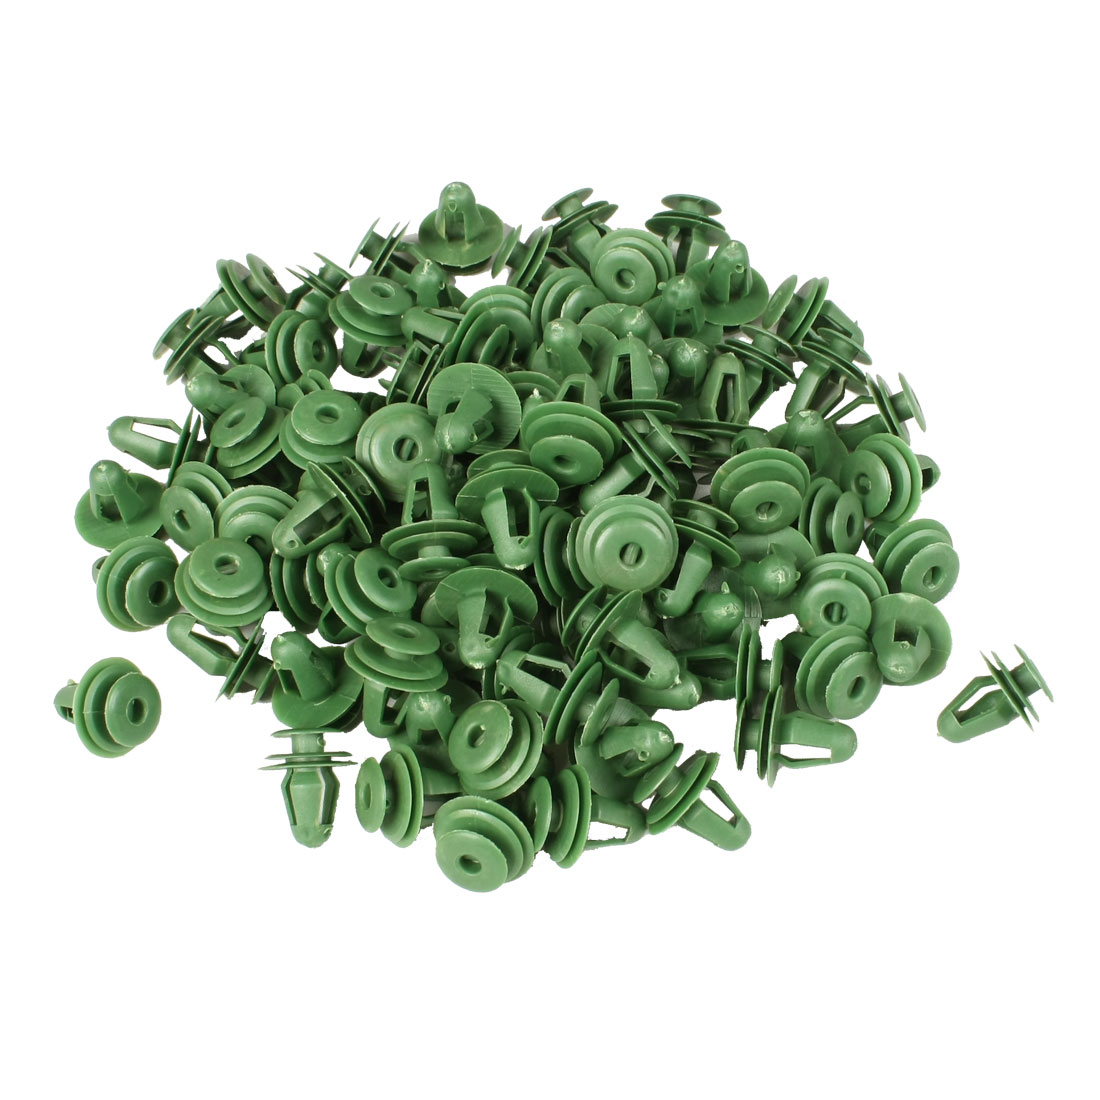 100 Pcs Green Car Fender Plastic Rivet Fastener 17mm x 14mm x 10mm